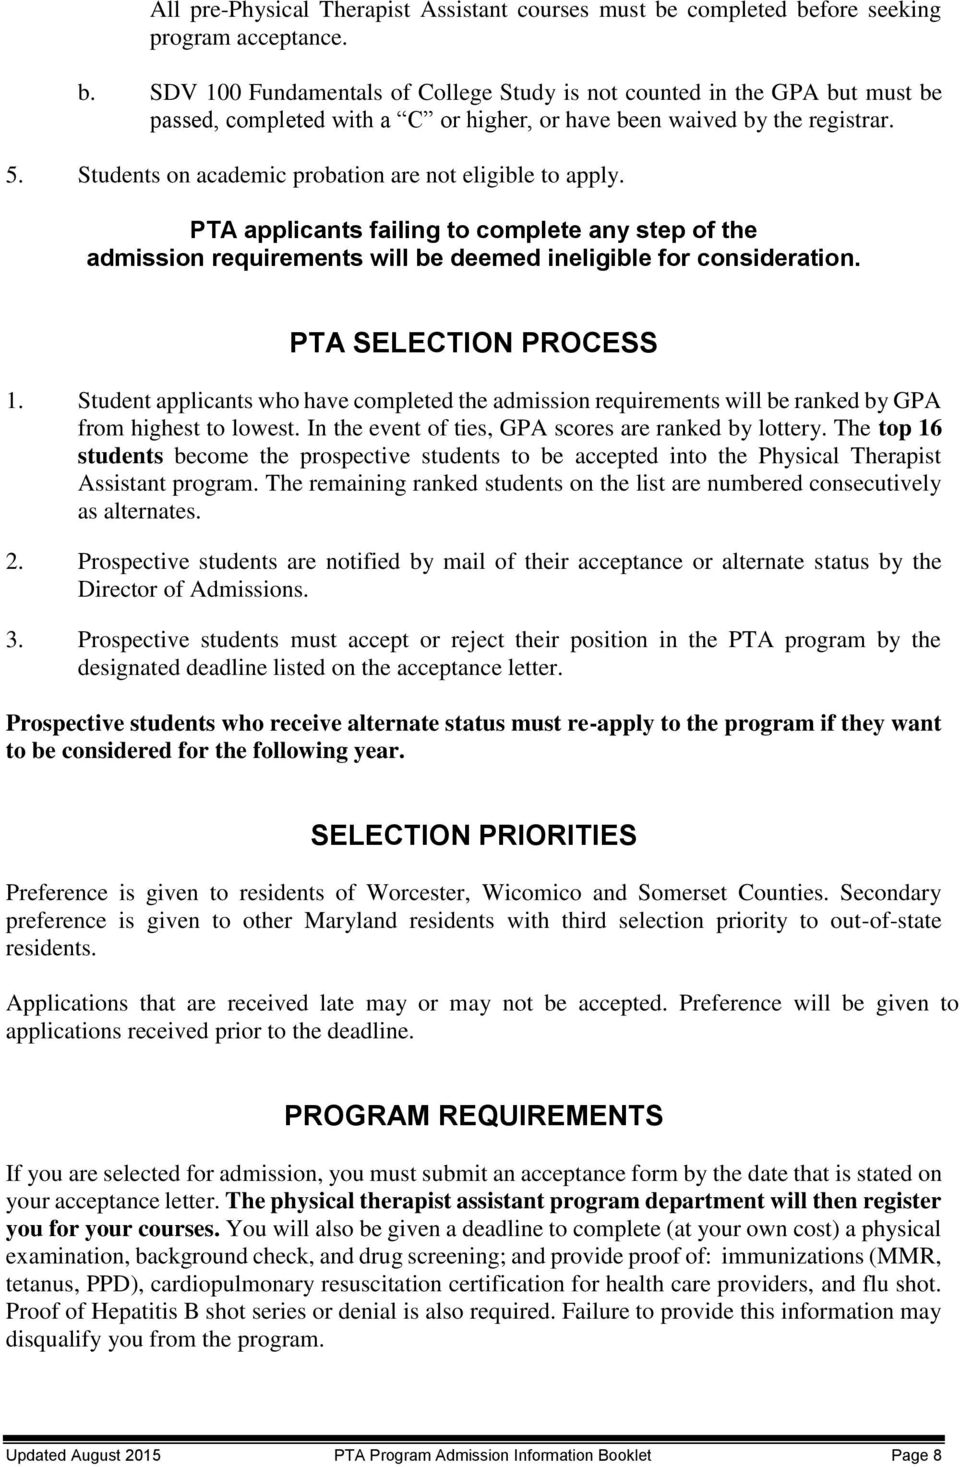 5. Students on academic probation are not eligible to apply. PTA applicants failing to complete any step of the admission requirements will be deemed ineligible for consideration.